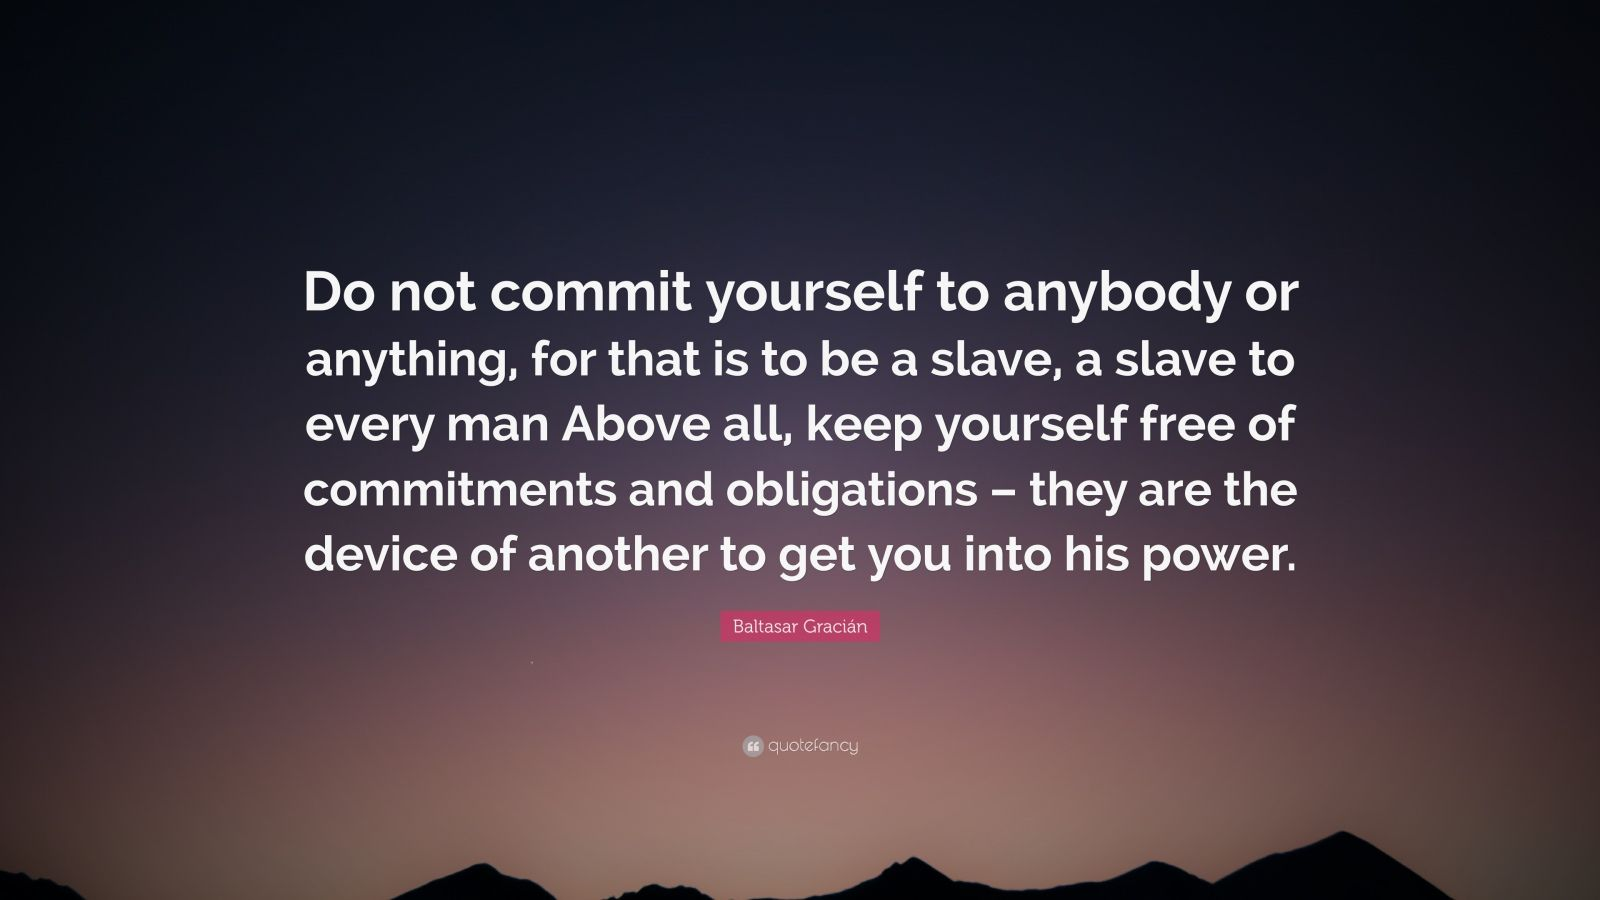 "Baltasar Gracián Quote: ""Do not commit yourself to anybody or anything, for that is to be a slave, a slave to every man Above all, keep yourself free of commitments and obligations – they are the device of another to get you into his power."""